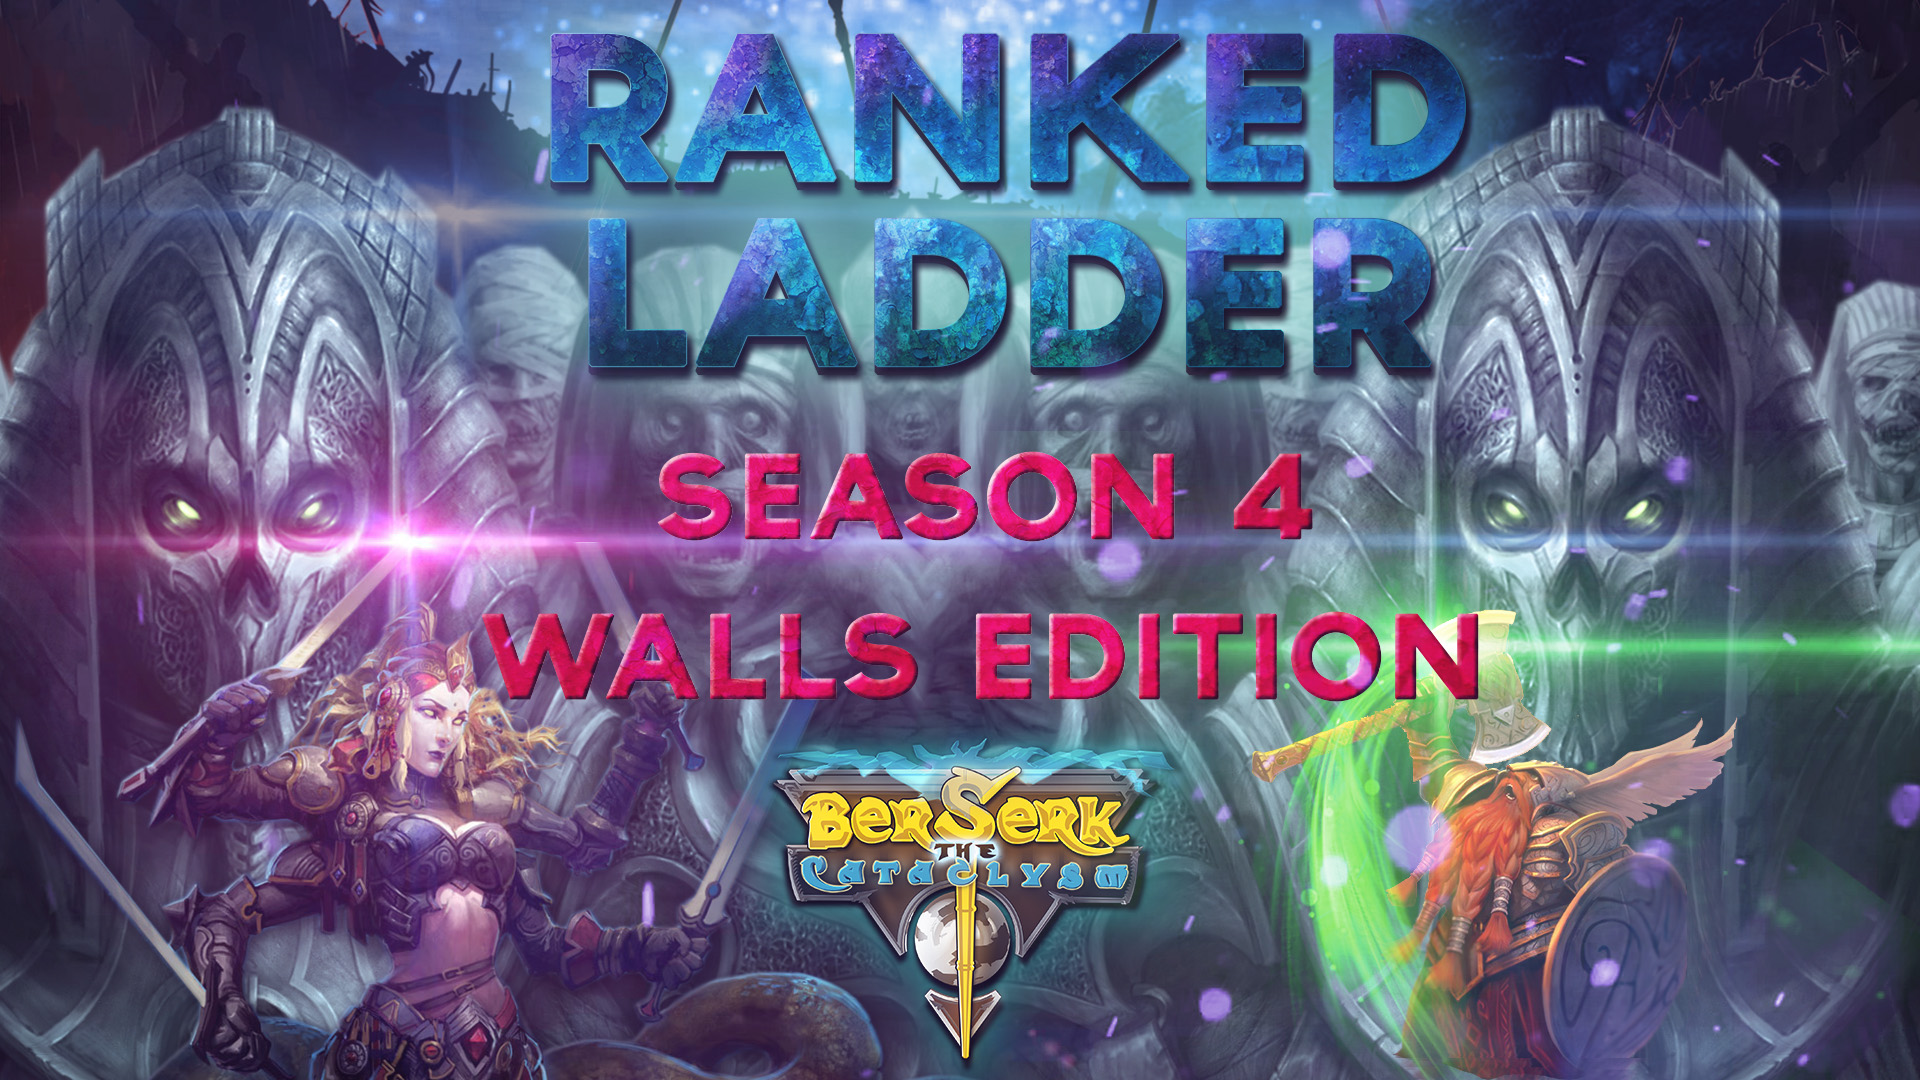 Ranked_LAdder_Season_Walls.jpg